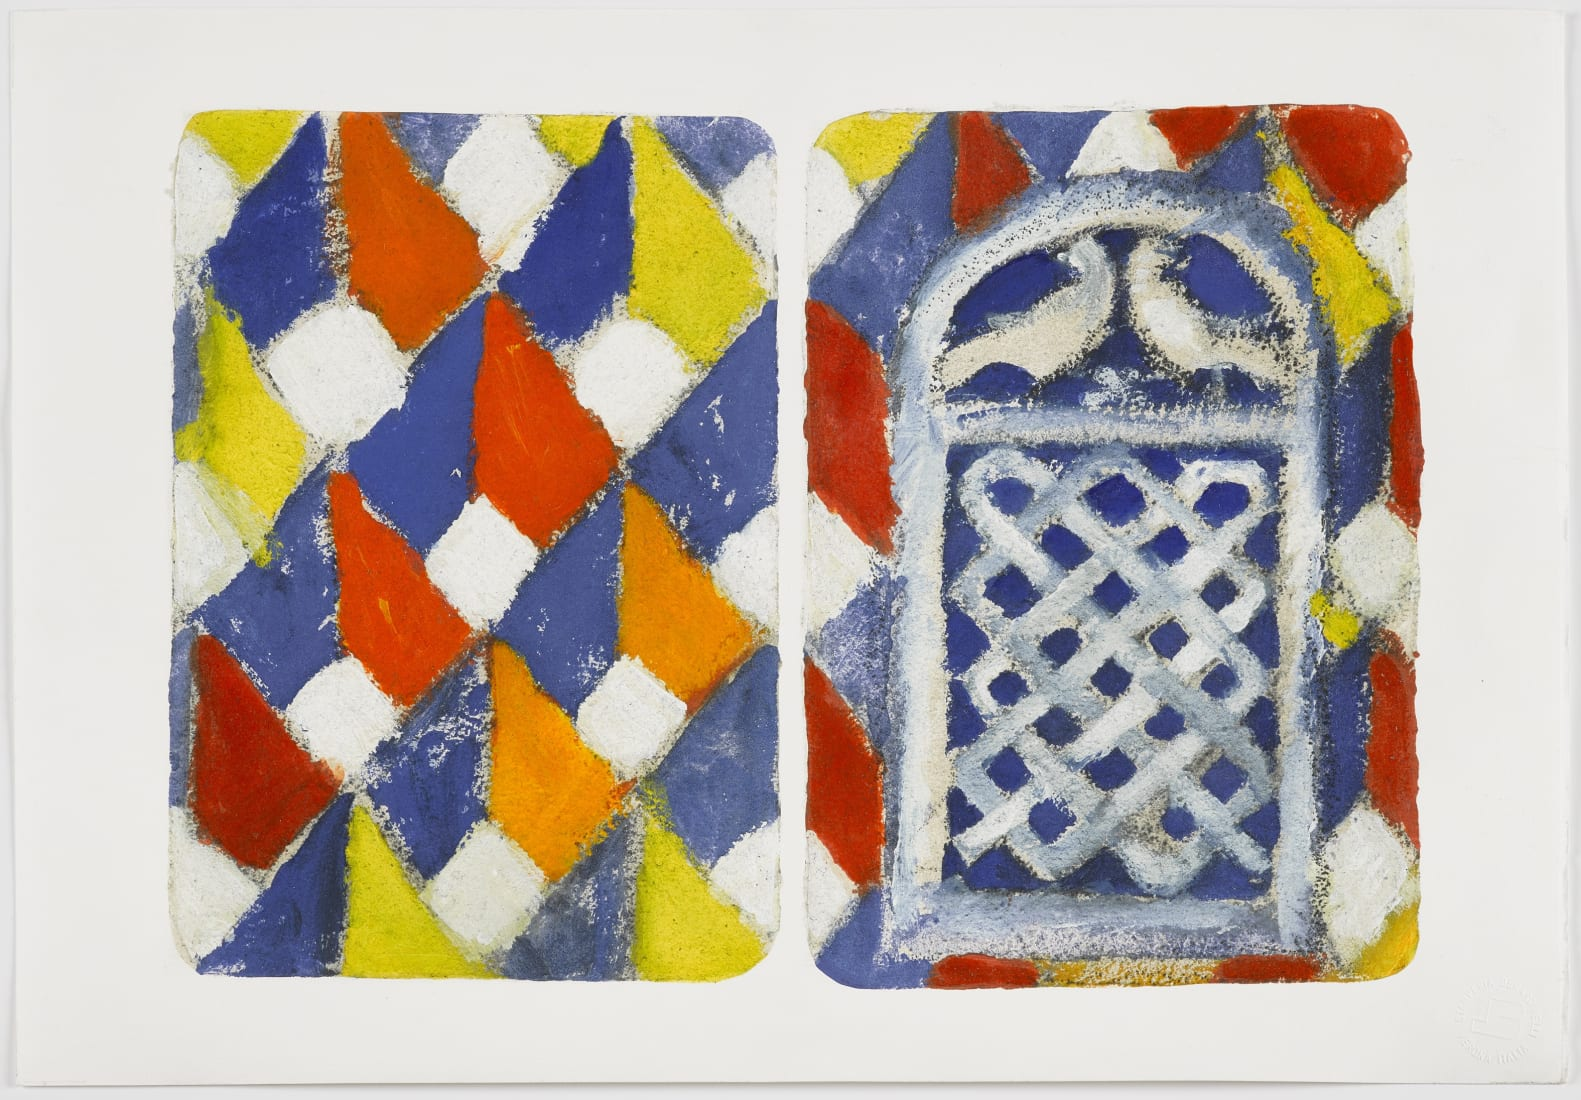 <p><em><strong>The Stones of Venice, sant' Alipio, diptych</strong></em><br />2018<br />Inkjet prints with screenprint, carborundum and hand-colouring on Hahnem&#252;hle 350gsm paper<br />Paper and image 38.0 x 56.0 cm <br />Editions of 35</p>